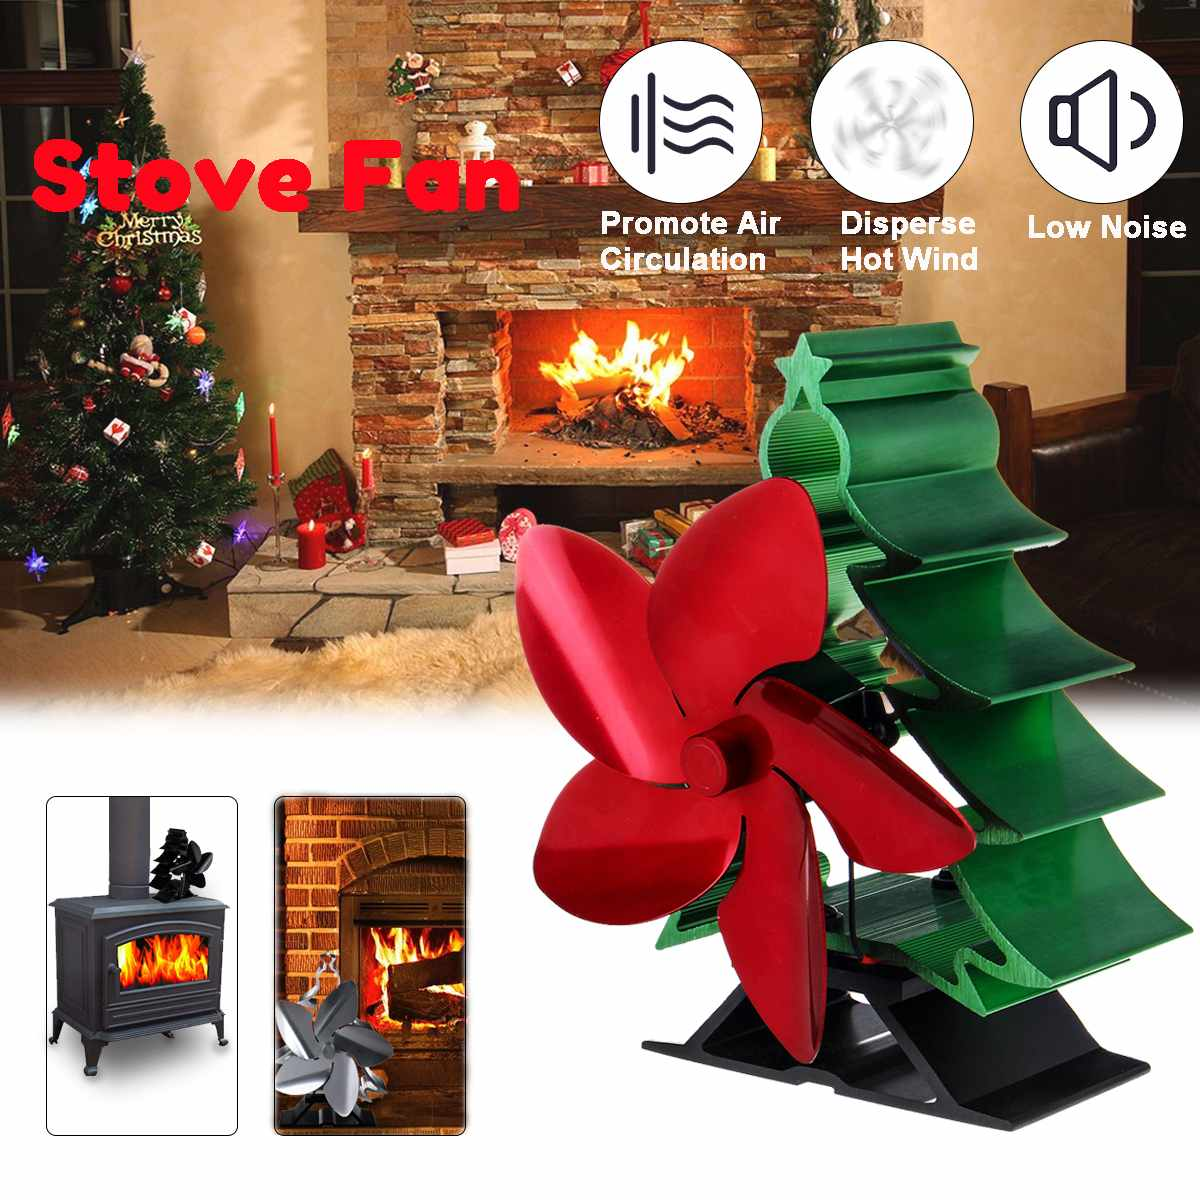 180CFM 5 Blade Home Fireplace Heat Powered Stove Fan Komin Log Wood Burner Eco Friendly Christmas Tree Shape Heat Distribution